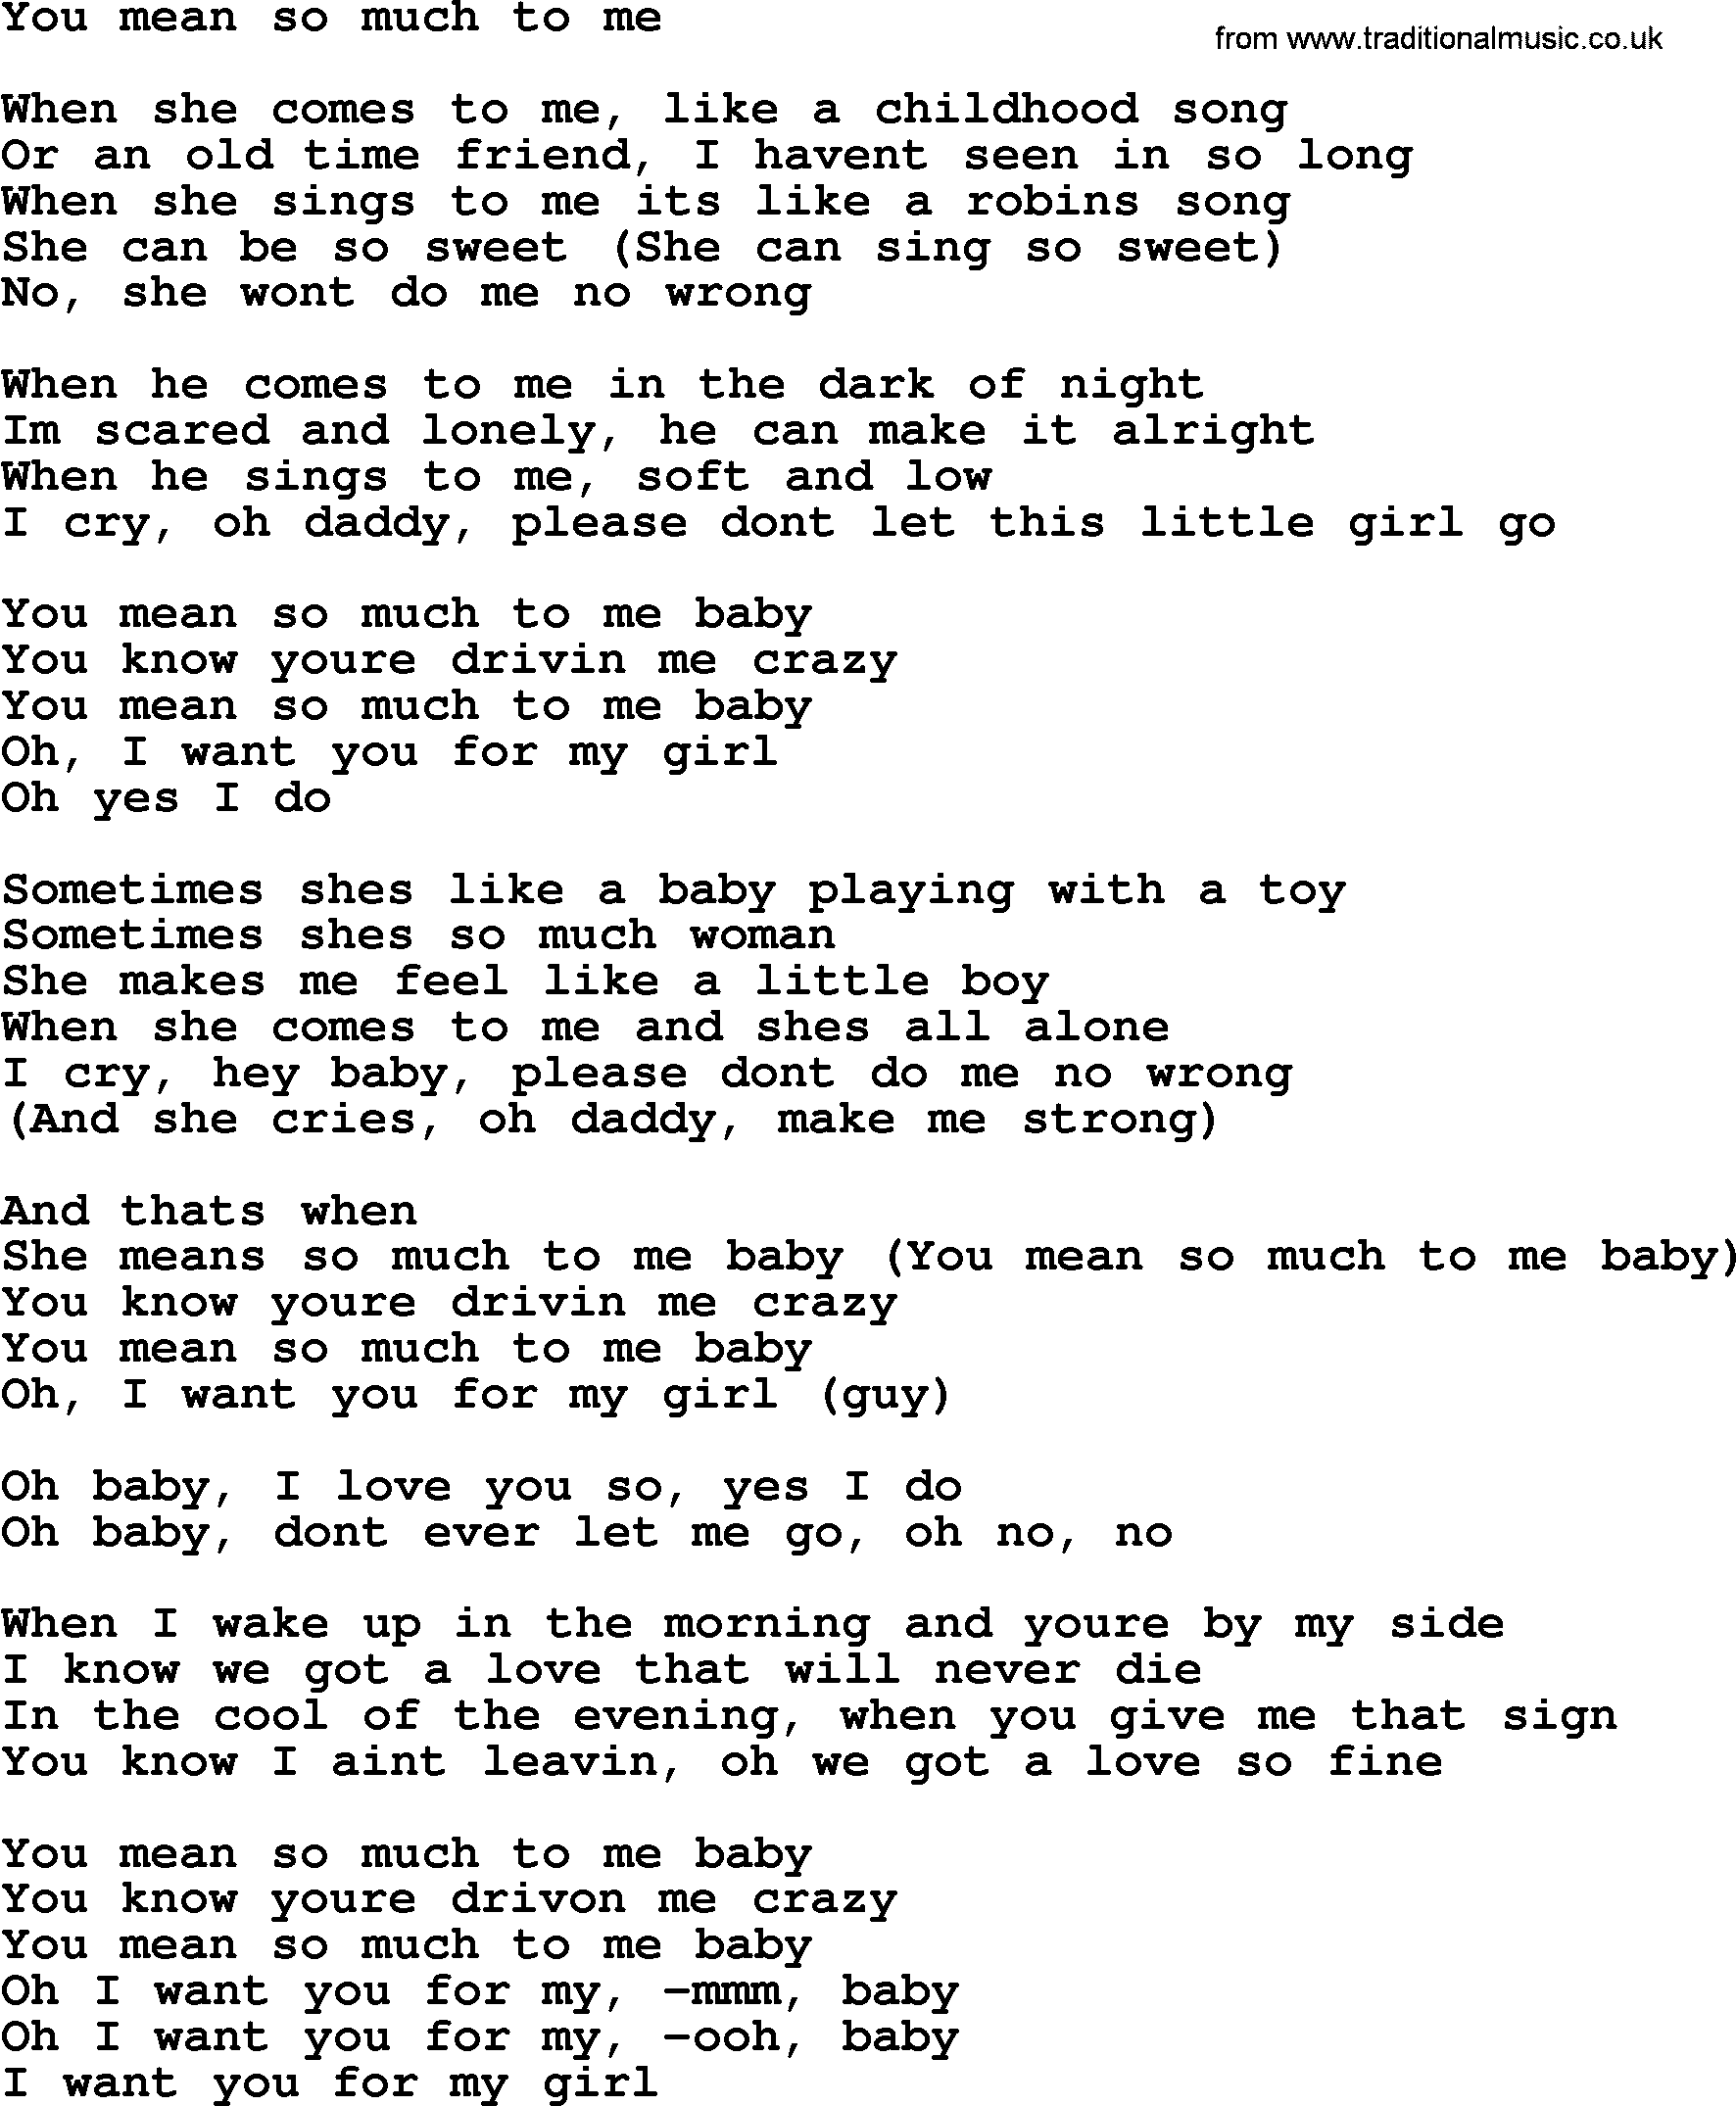 Bruce Springsteen Song You Mean So Much To Me Lyrics